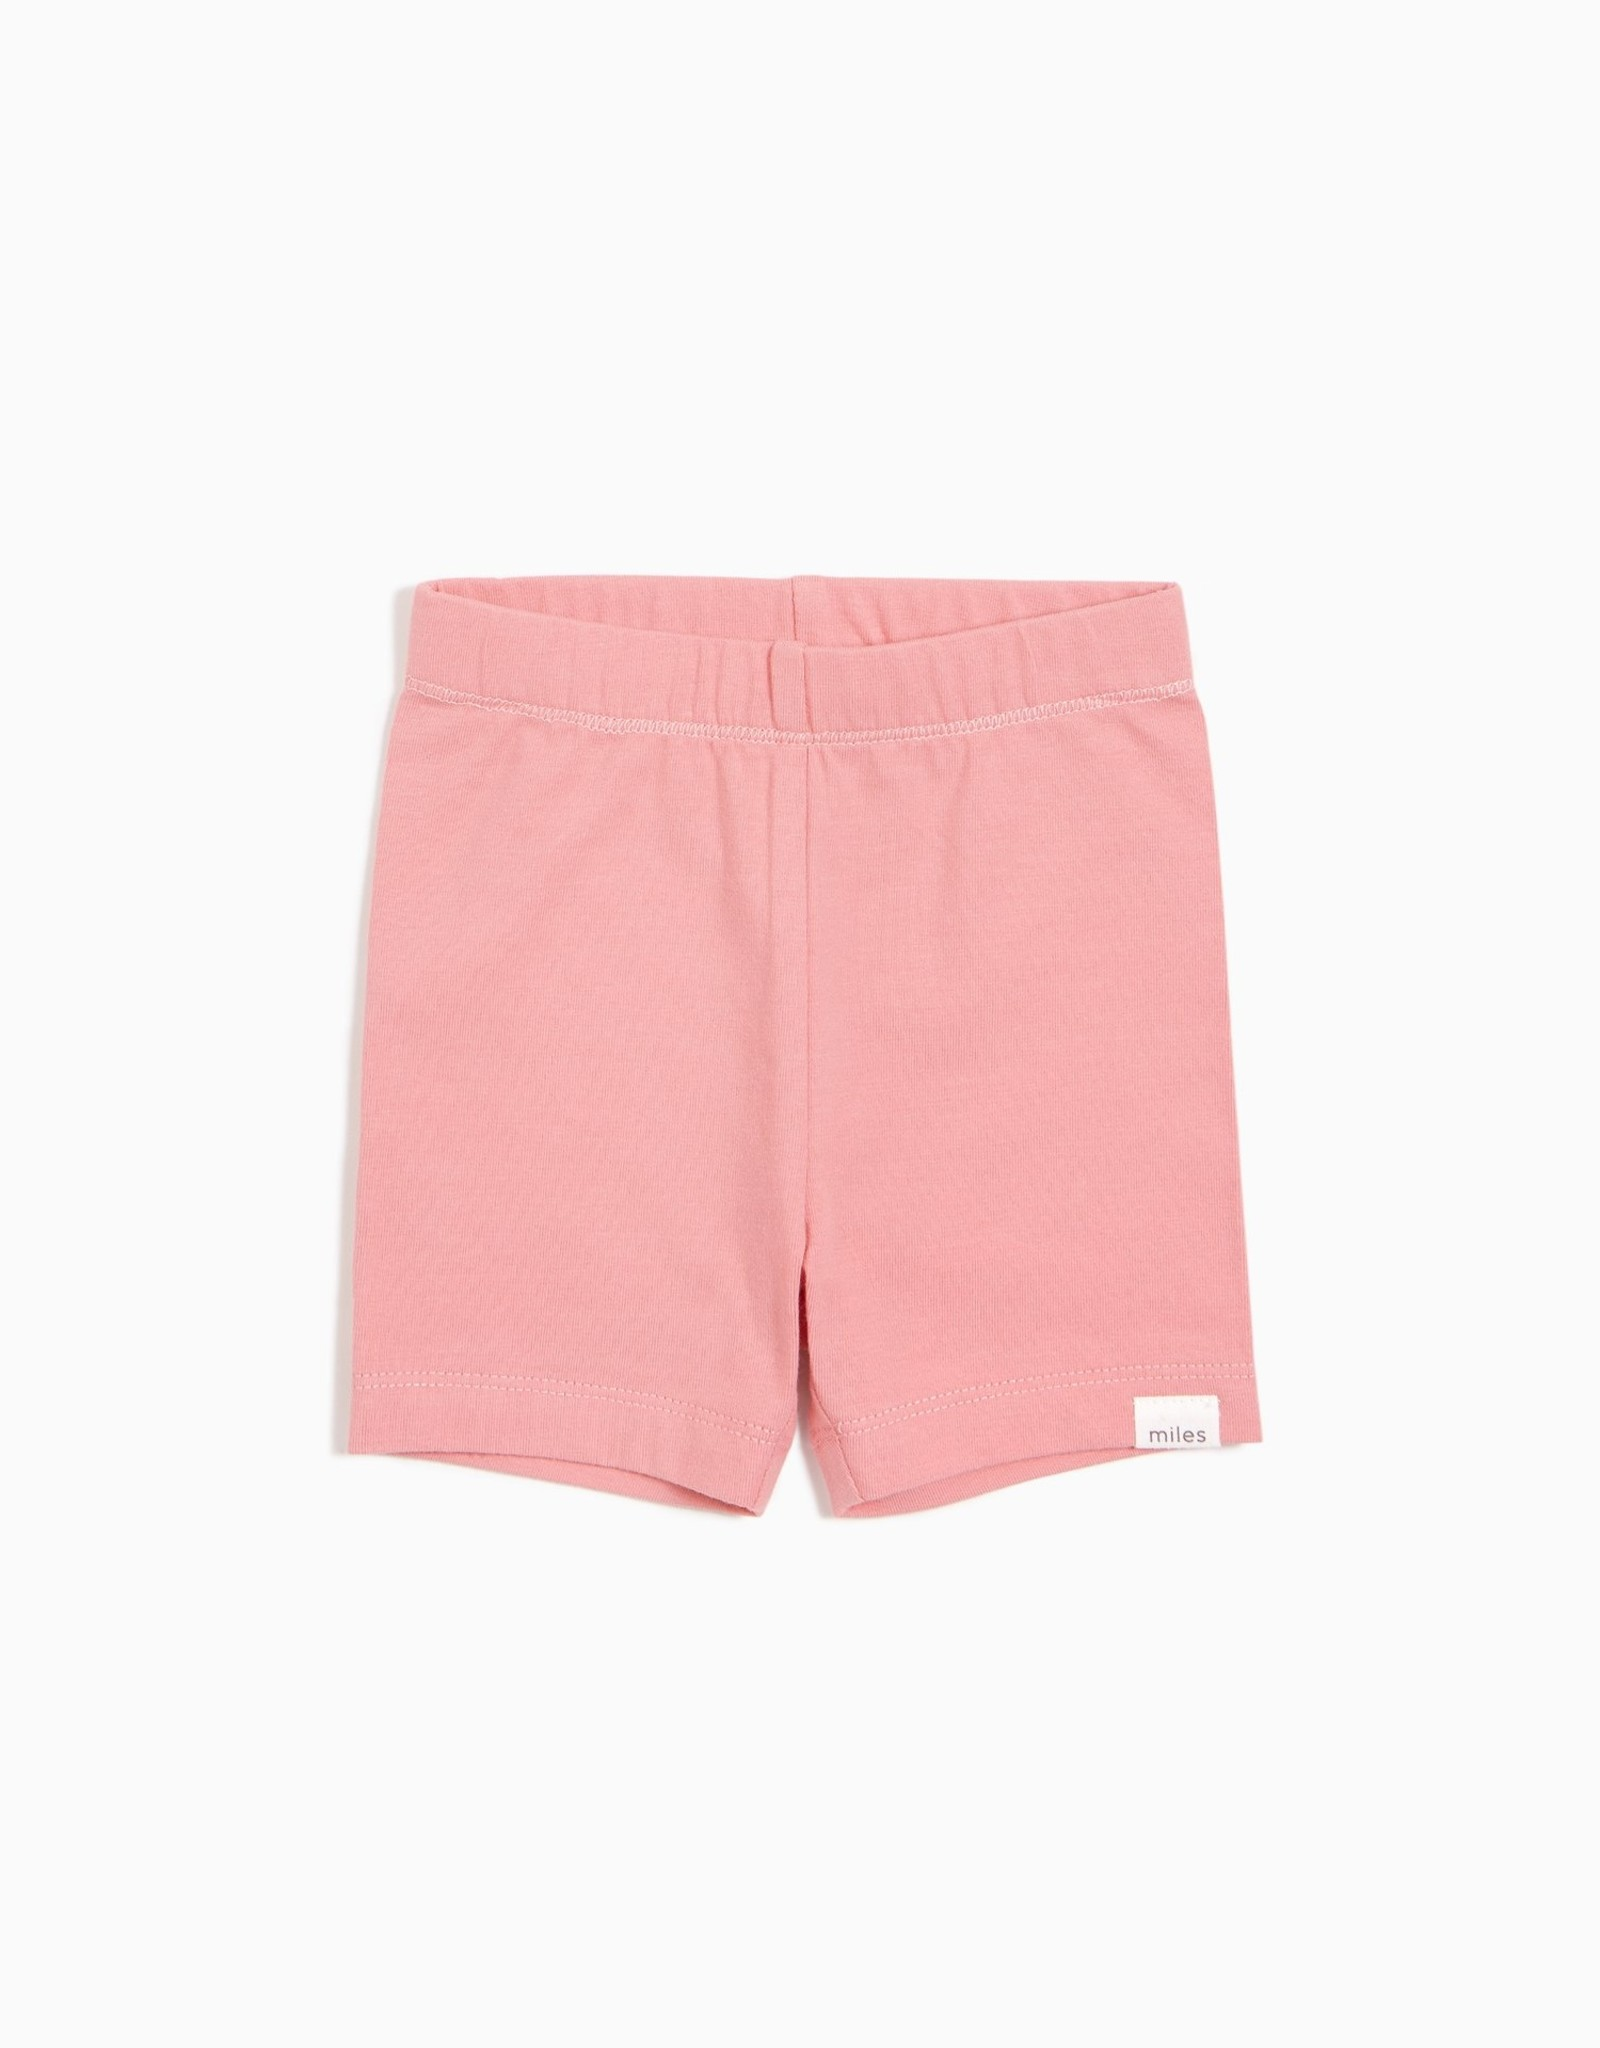 Miles SP21 Coral Bike Shorts